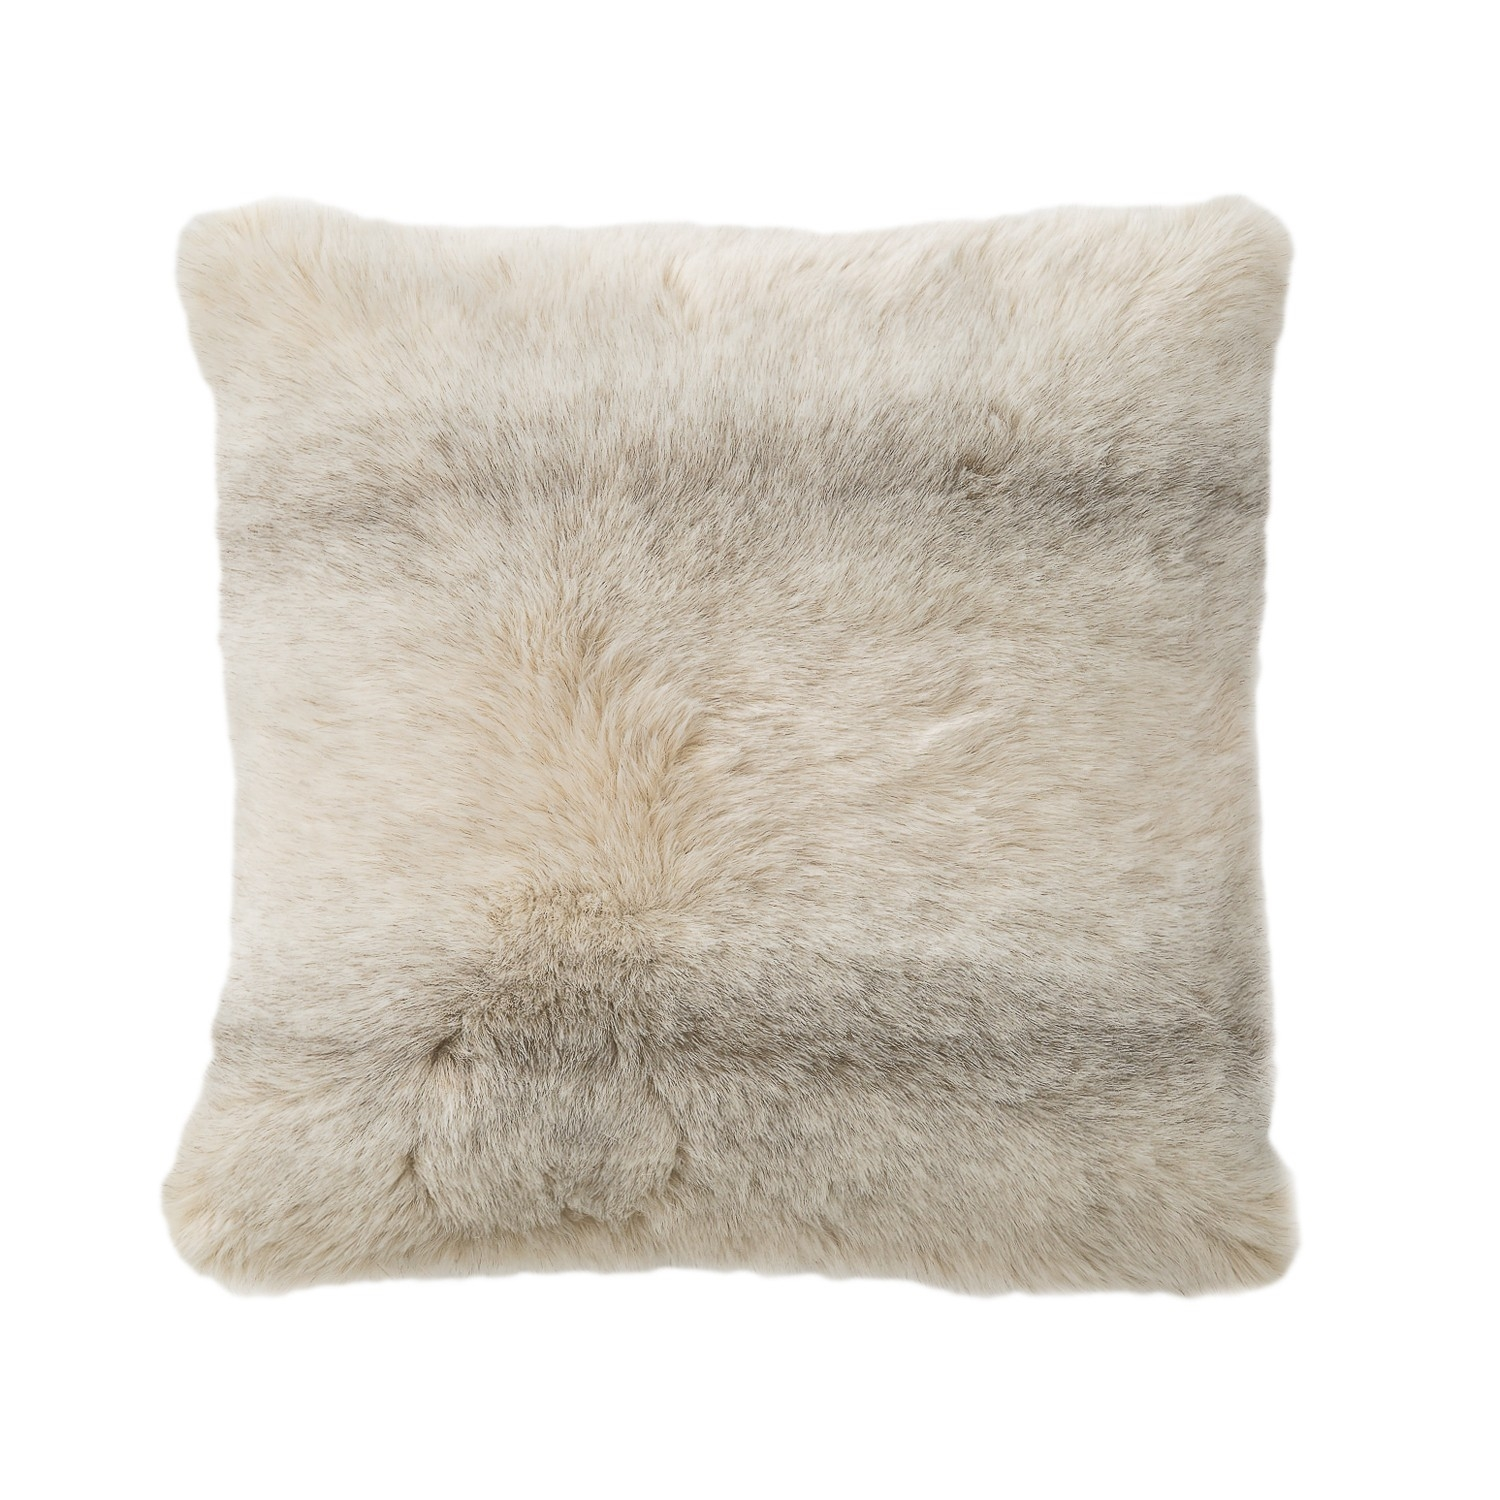 PERNULA PILLOW-50x50-IVORY